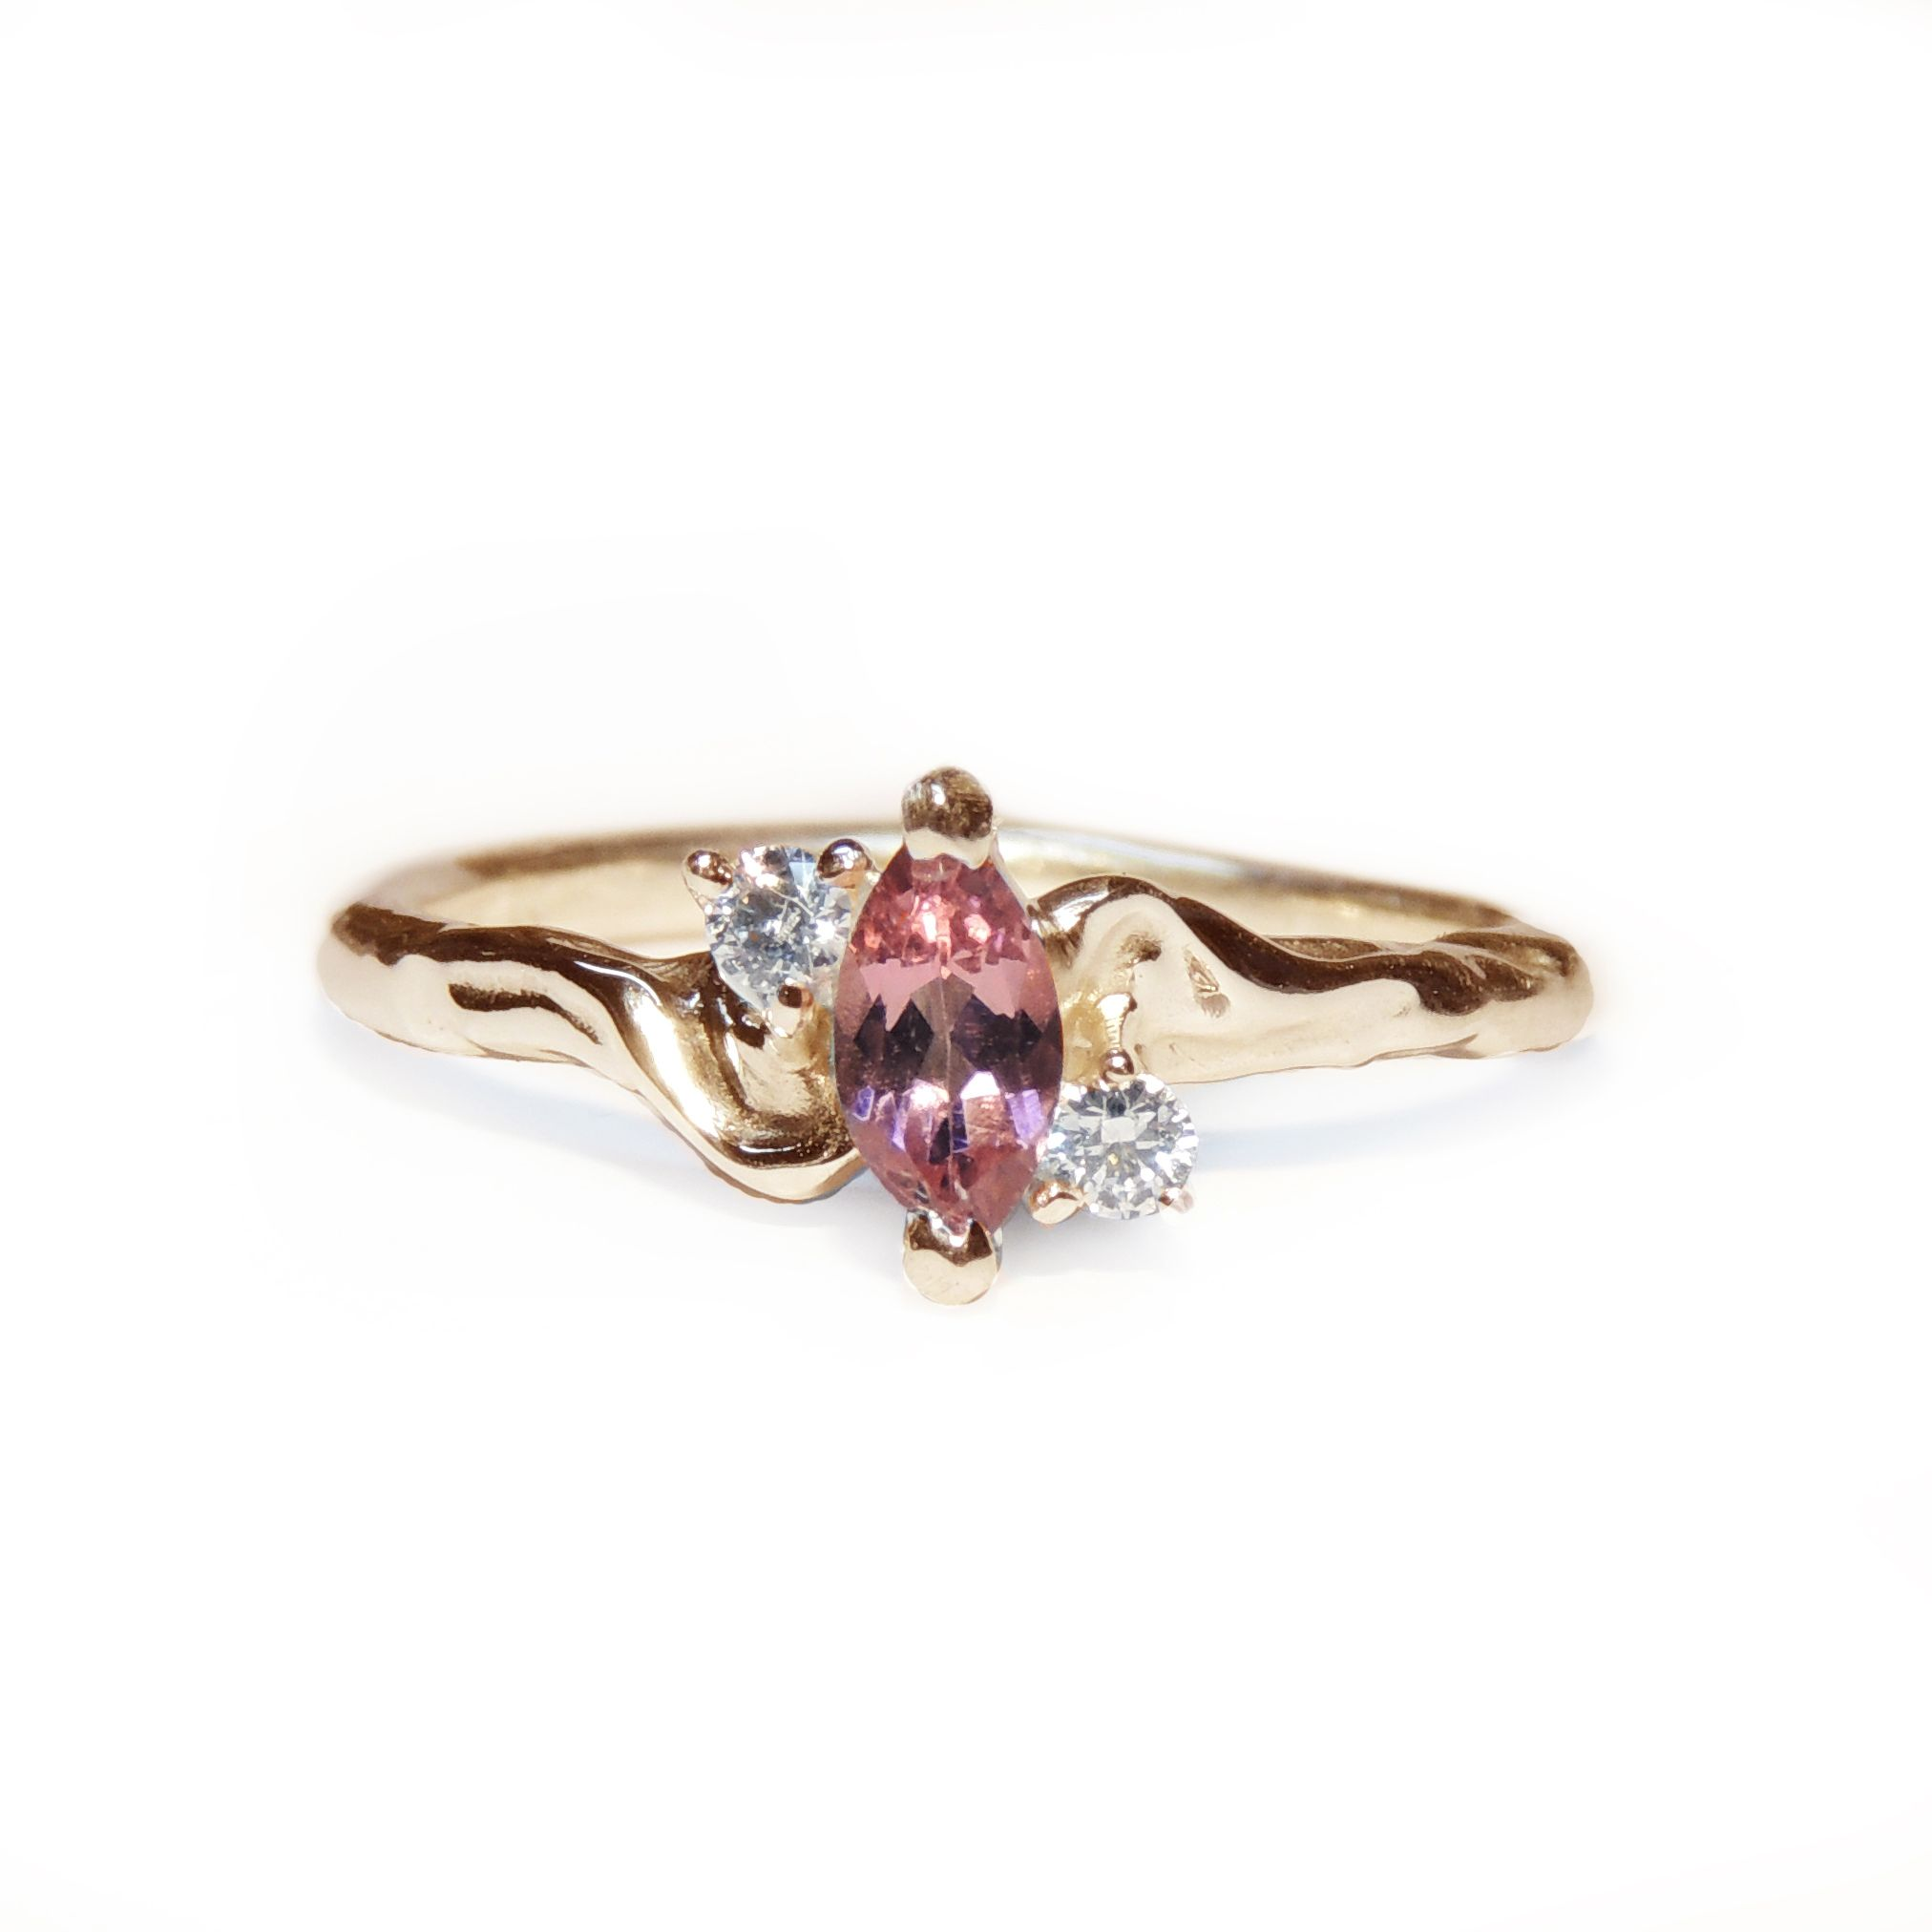 Handmade solid 9ct yellow gold ring set with a beautiful marquise tourmaline and two white diamond. The ...